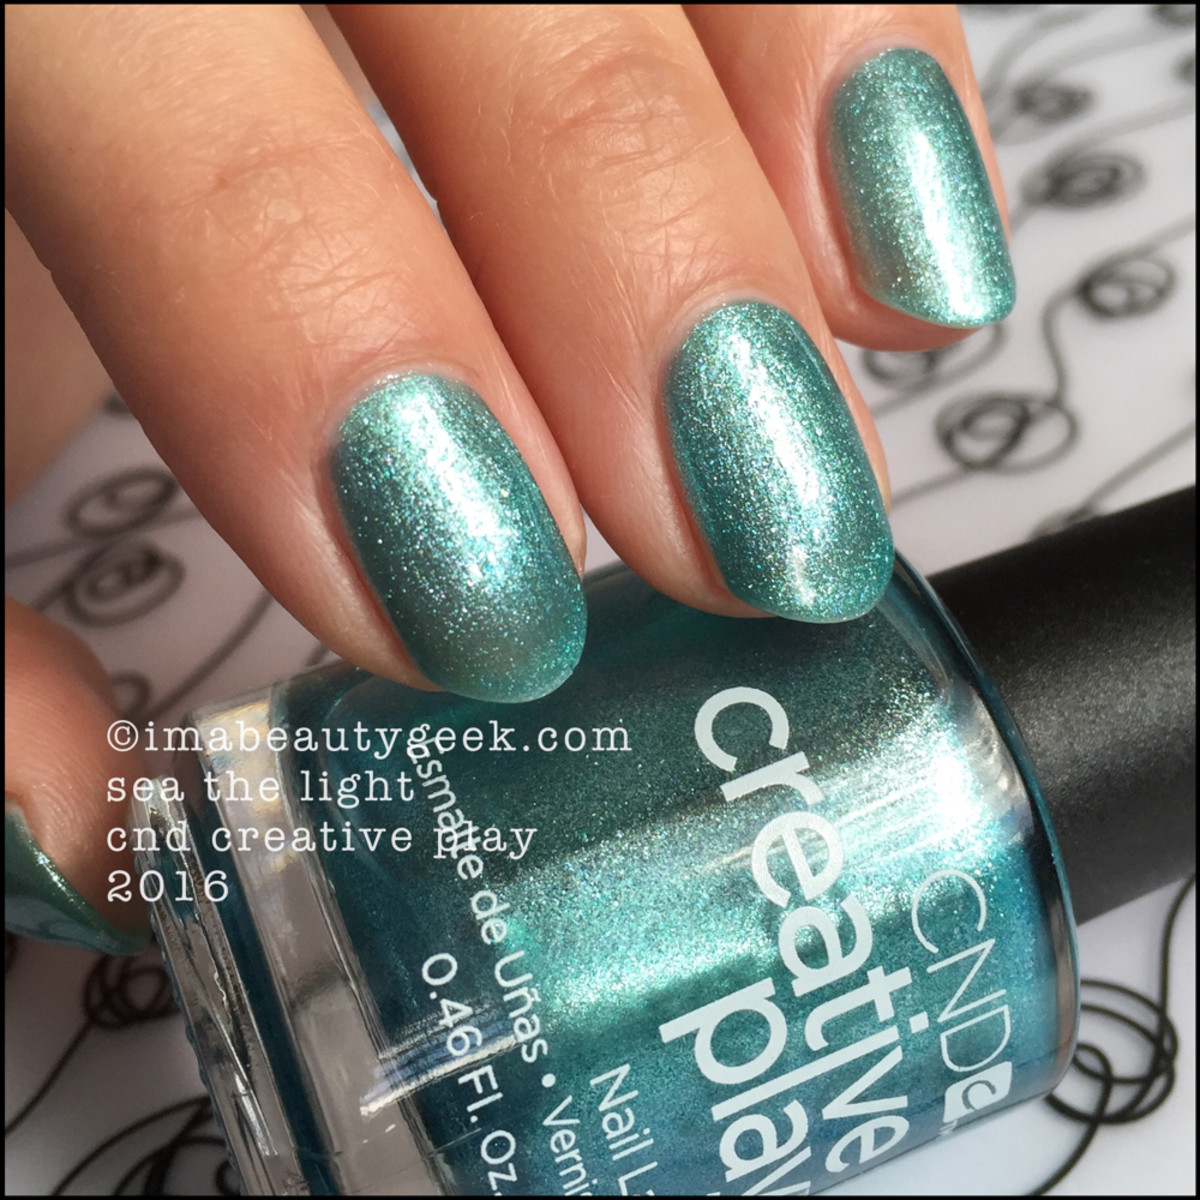 CND Creative Play Sea the Light_CND Creative Play Nail Polish Swatches